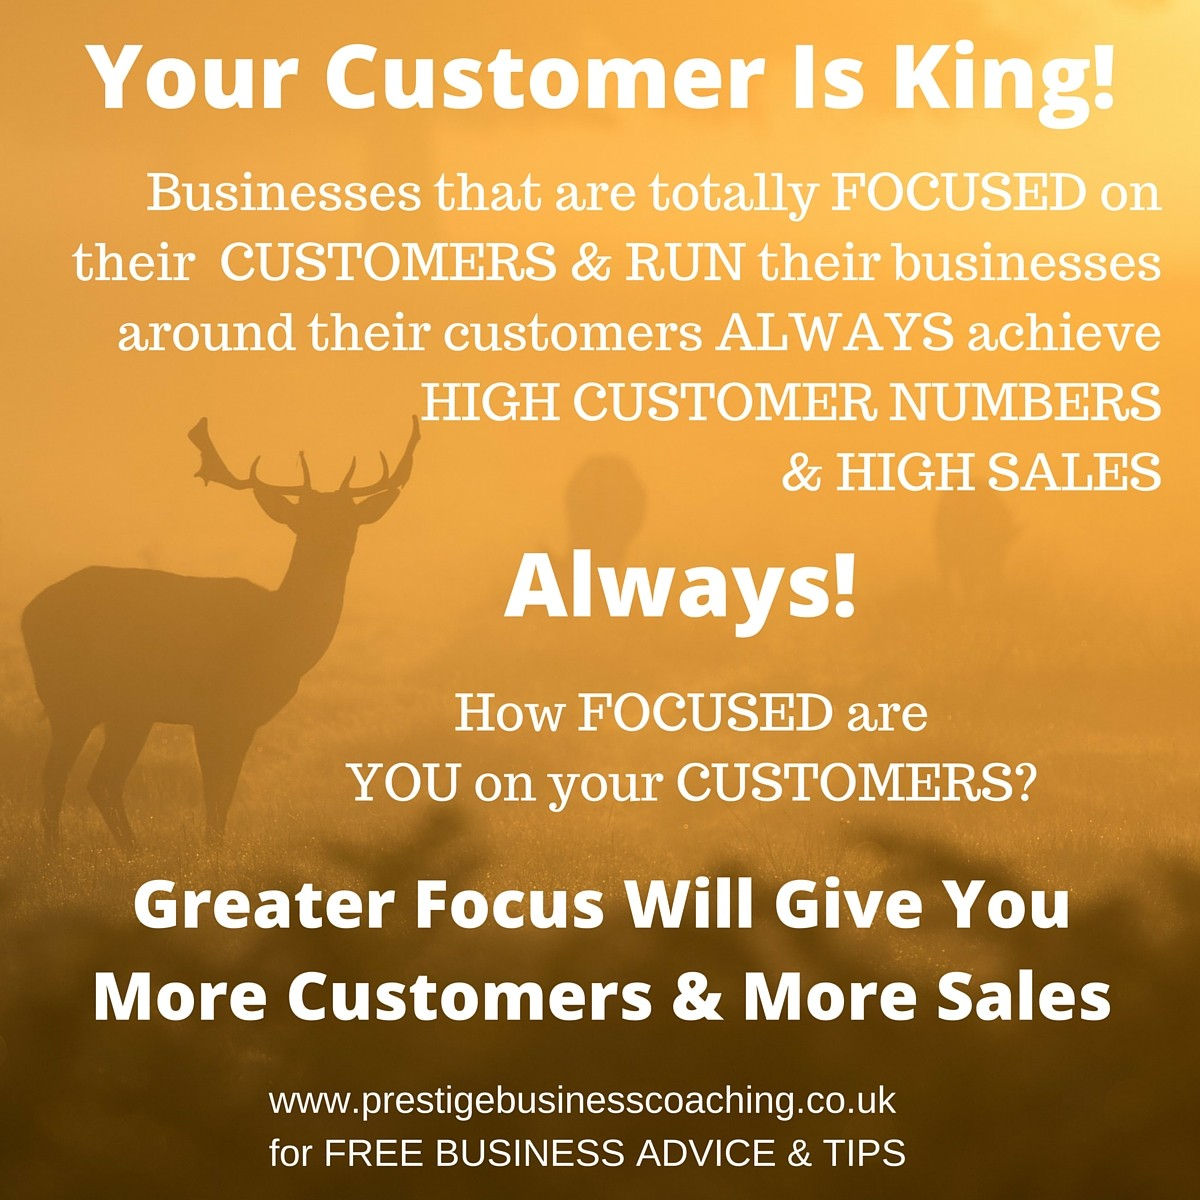 Your Customer Is King - RUN YOUR BUSINESS AROUND YOUR CUSTOMER TO ACHIEVE GREATER SALES